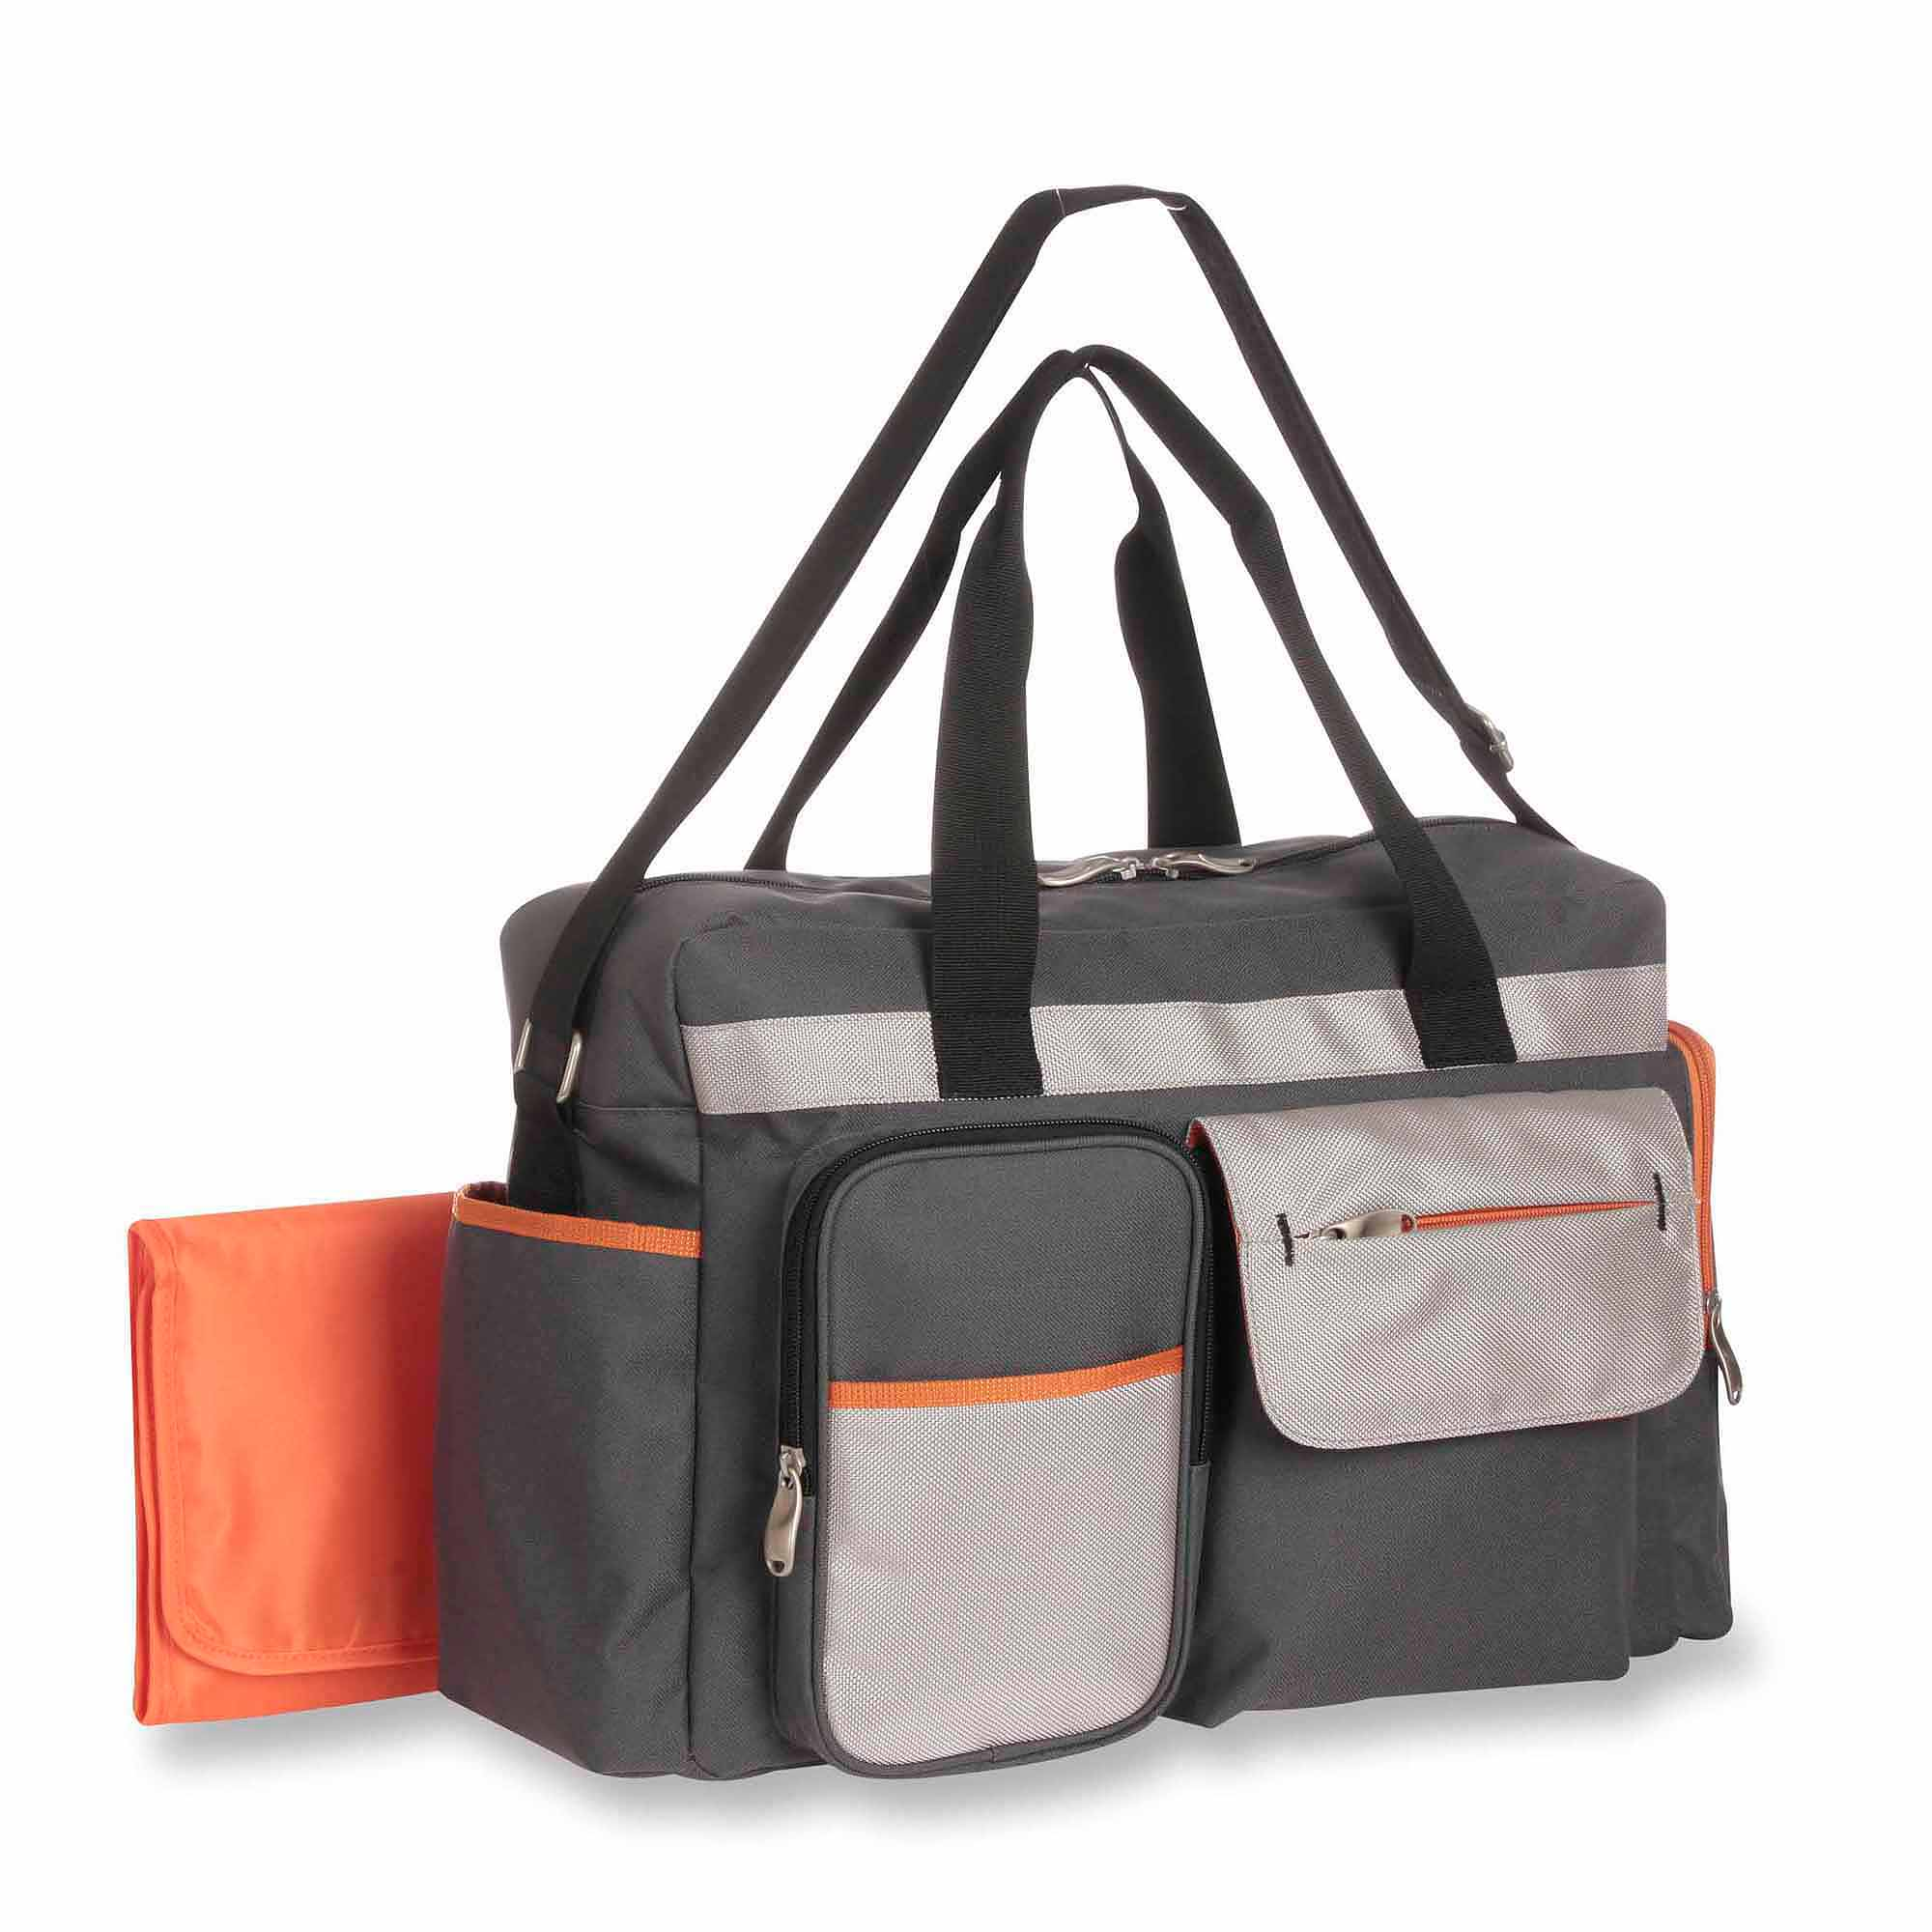 Graco Tangerine Collection Duffle Diaper Bag with Smart Organizer System  Grey w/ Orange